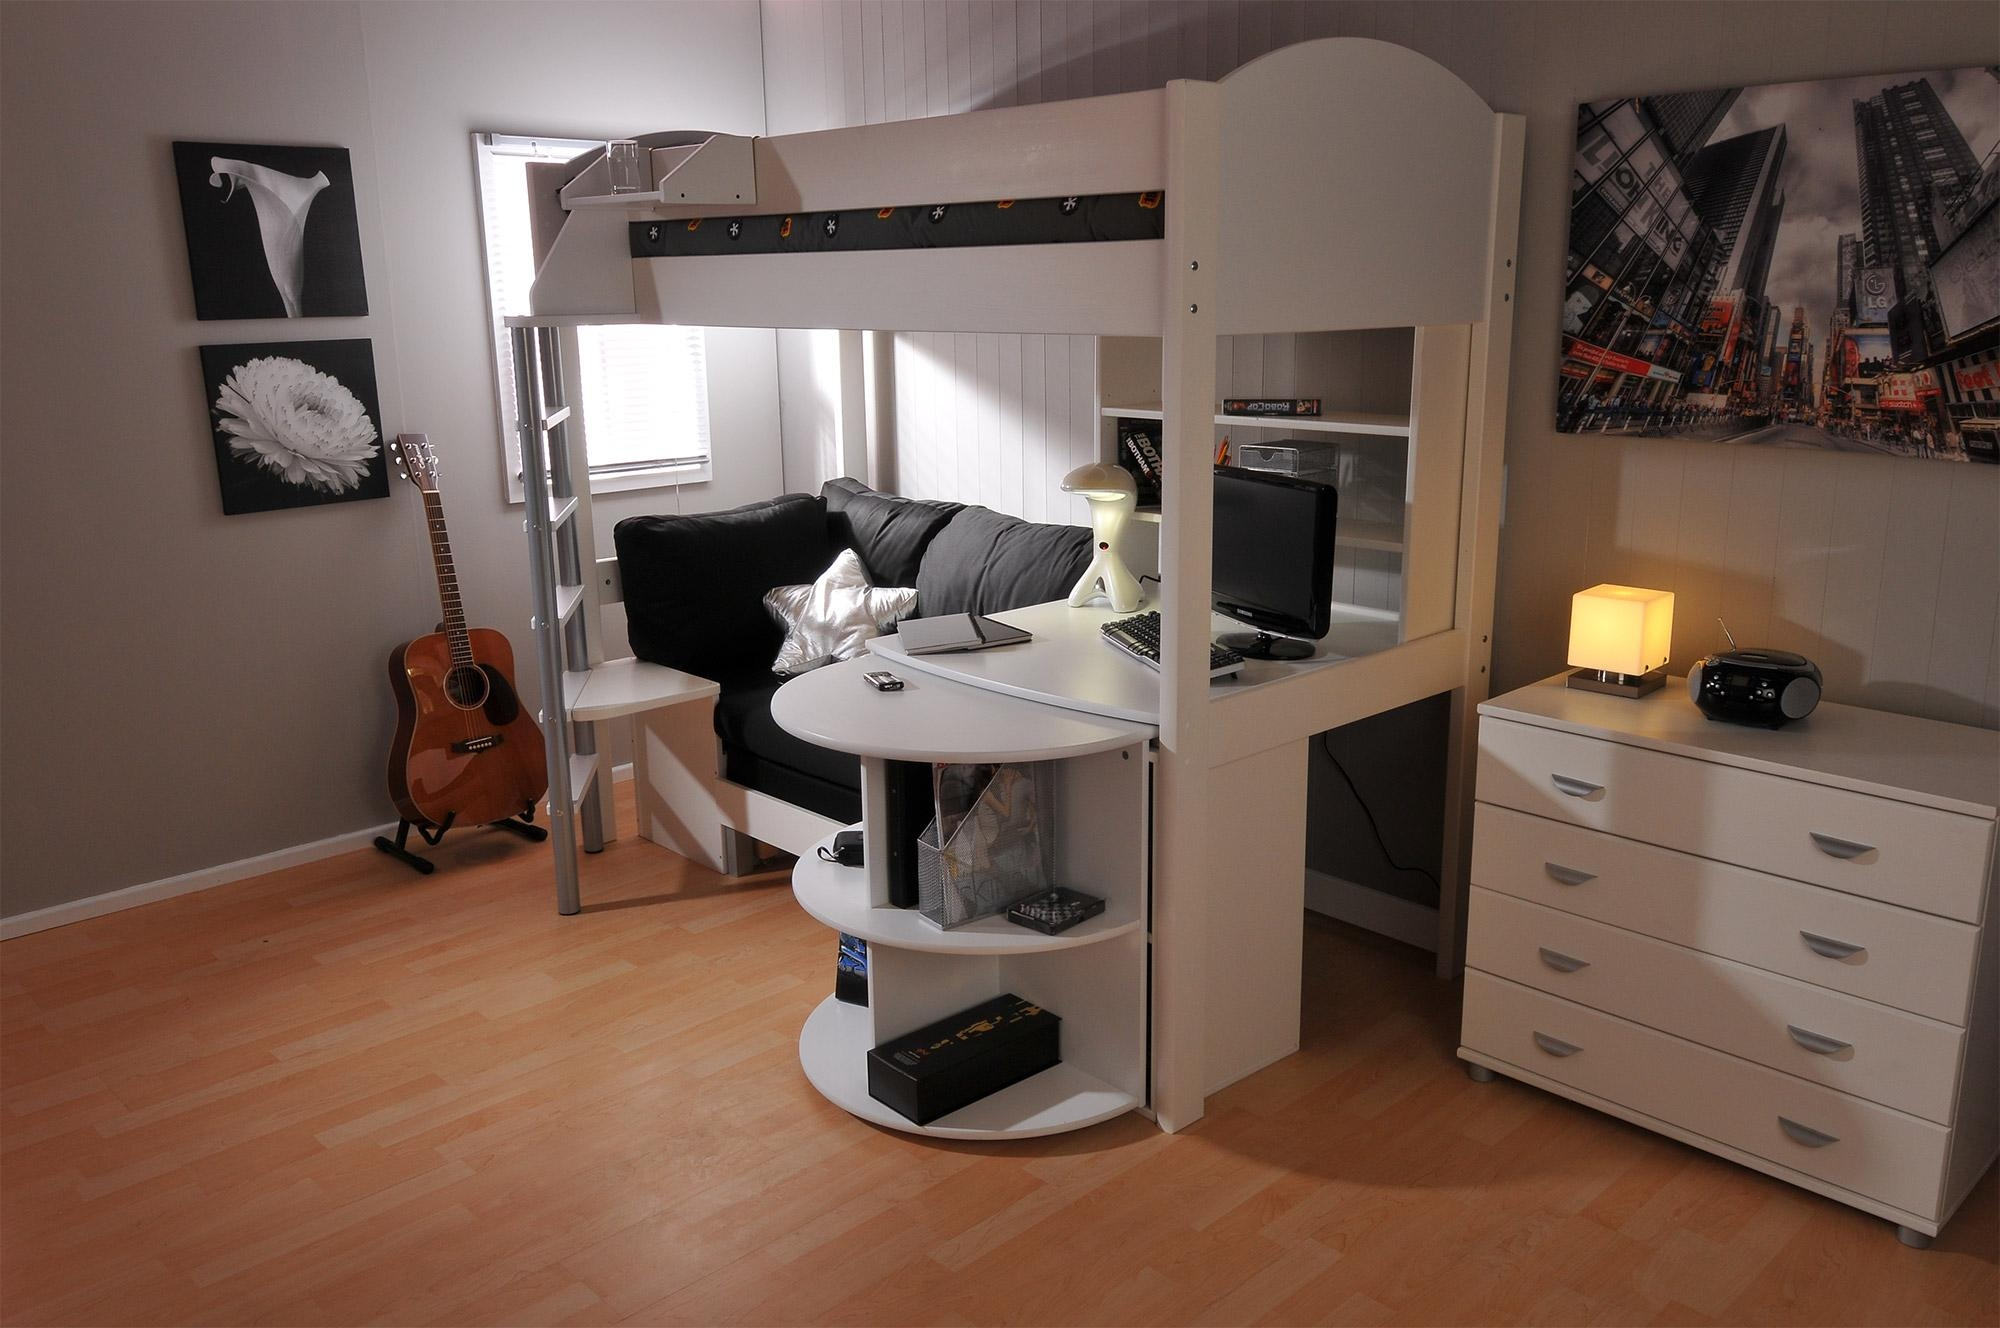 Childrens High Sleeper With Futon | Roselawnlutheran With Regard To High Sleeper Bed With Sofa (View 16 of 20)